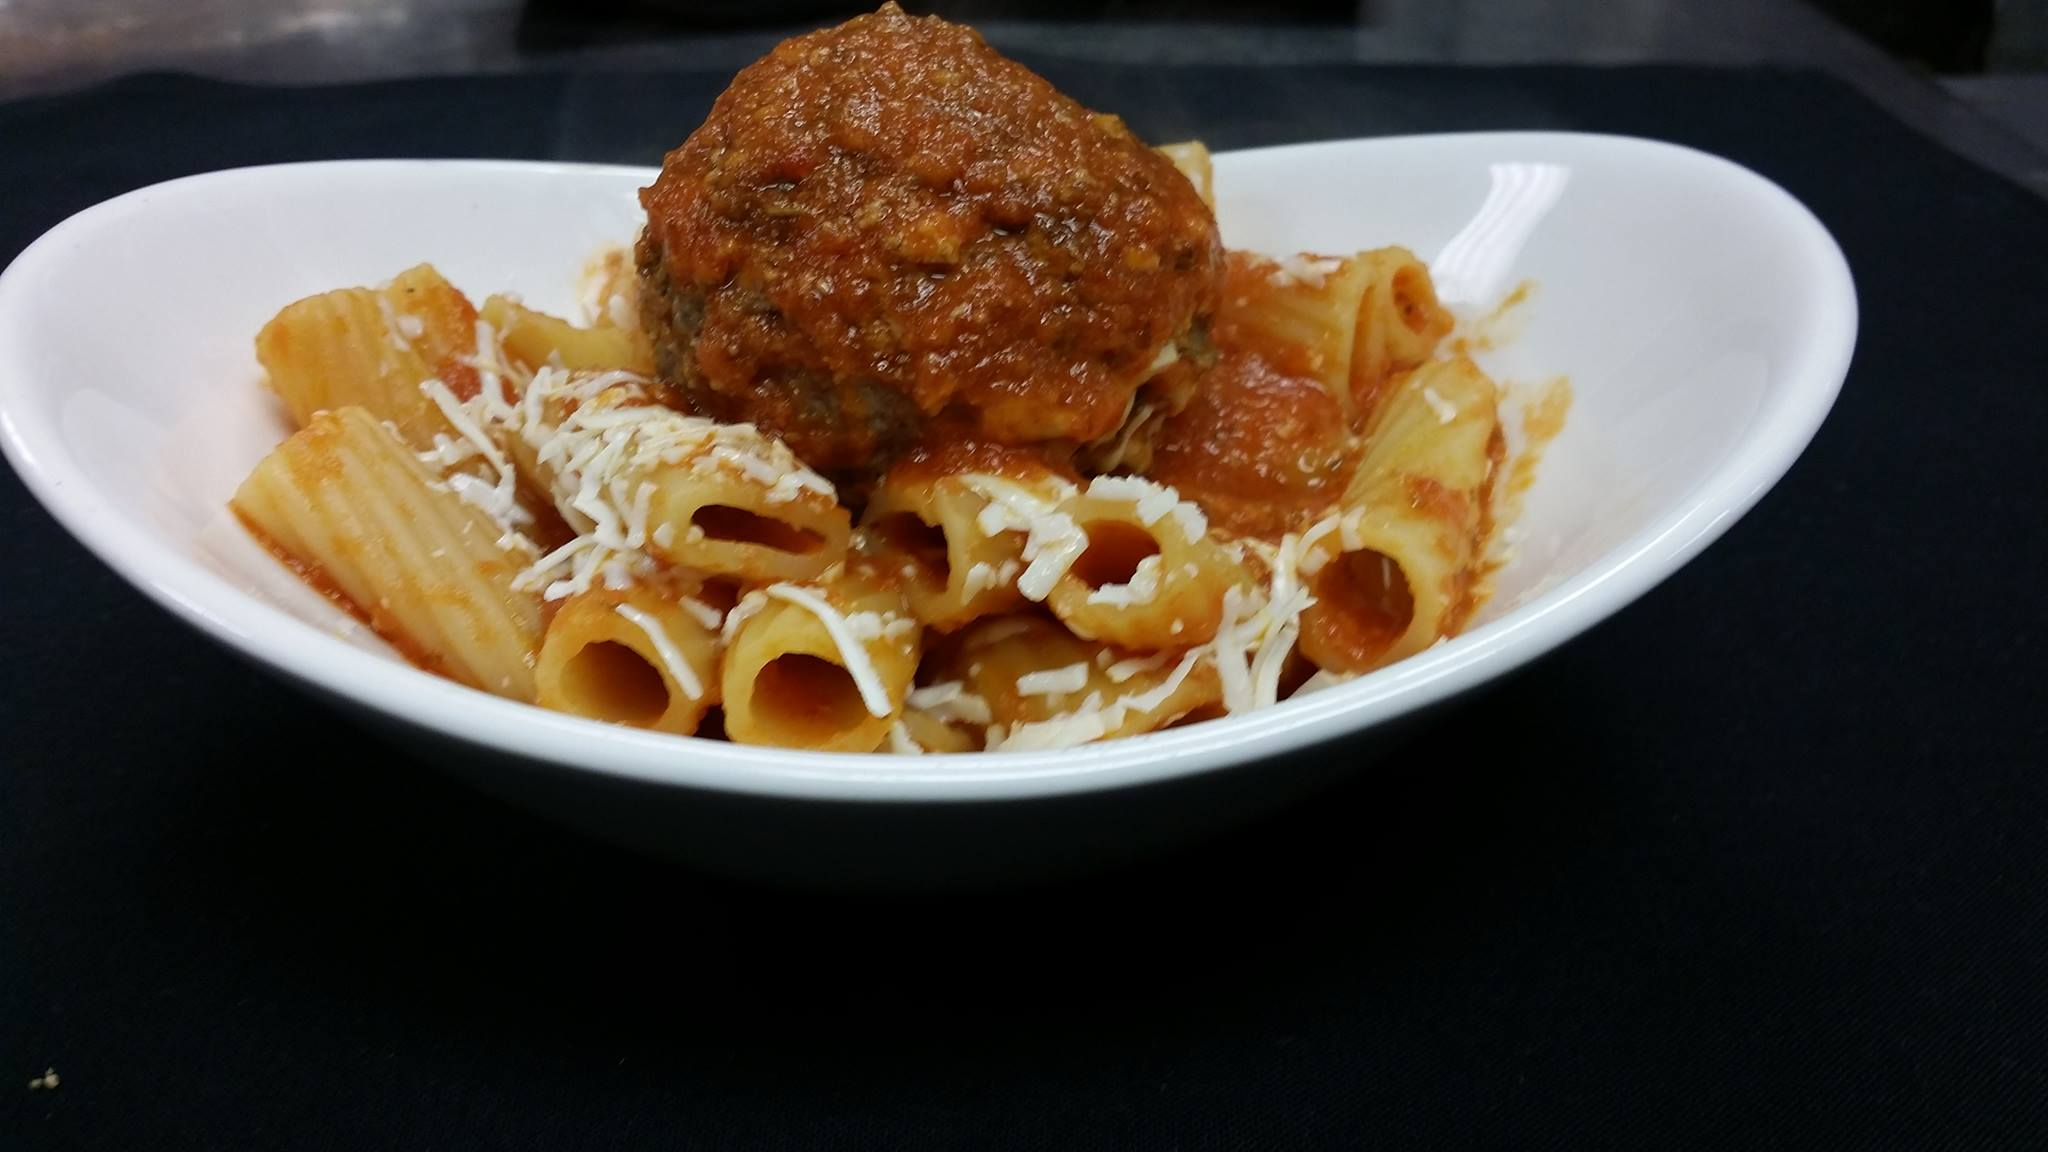 Rigatoni pasta with tomato sauce and meatball